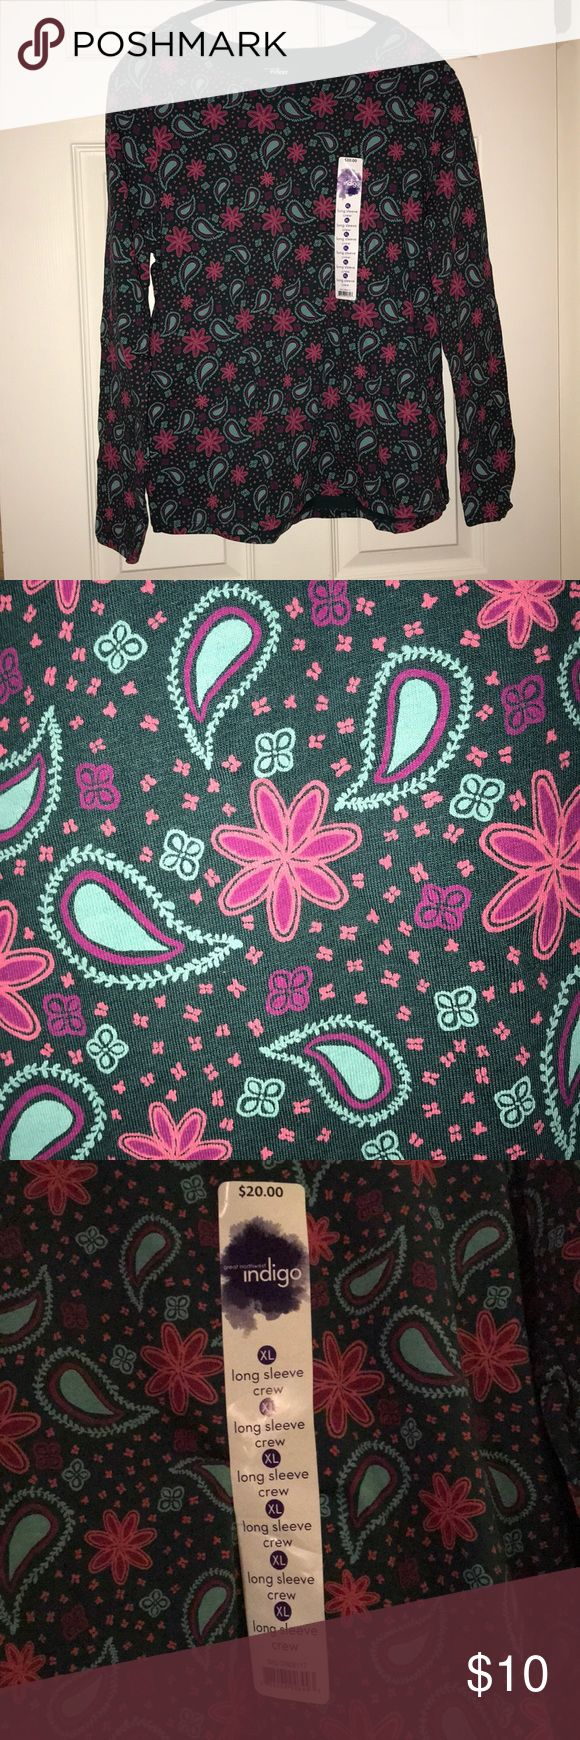 Paisley Long Sleeve Crew Neck T-Shirt Women's XL This is a paisley print shirt: overall emerald-ish green with pink/fuchsia flowers and light blue/teal accents. NWT Great Northwest Indigo Tops Tees - Long Sleeve